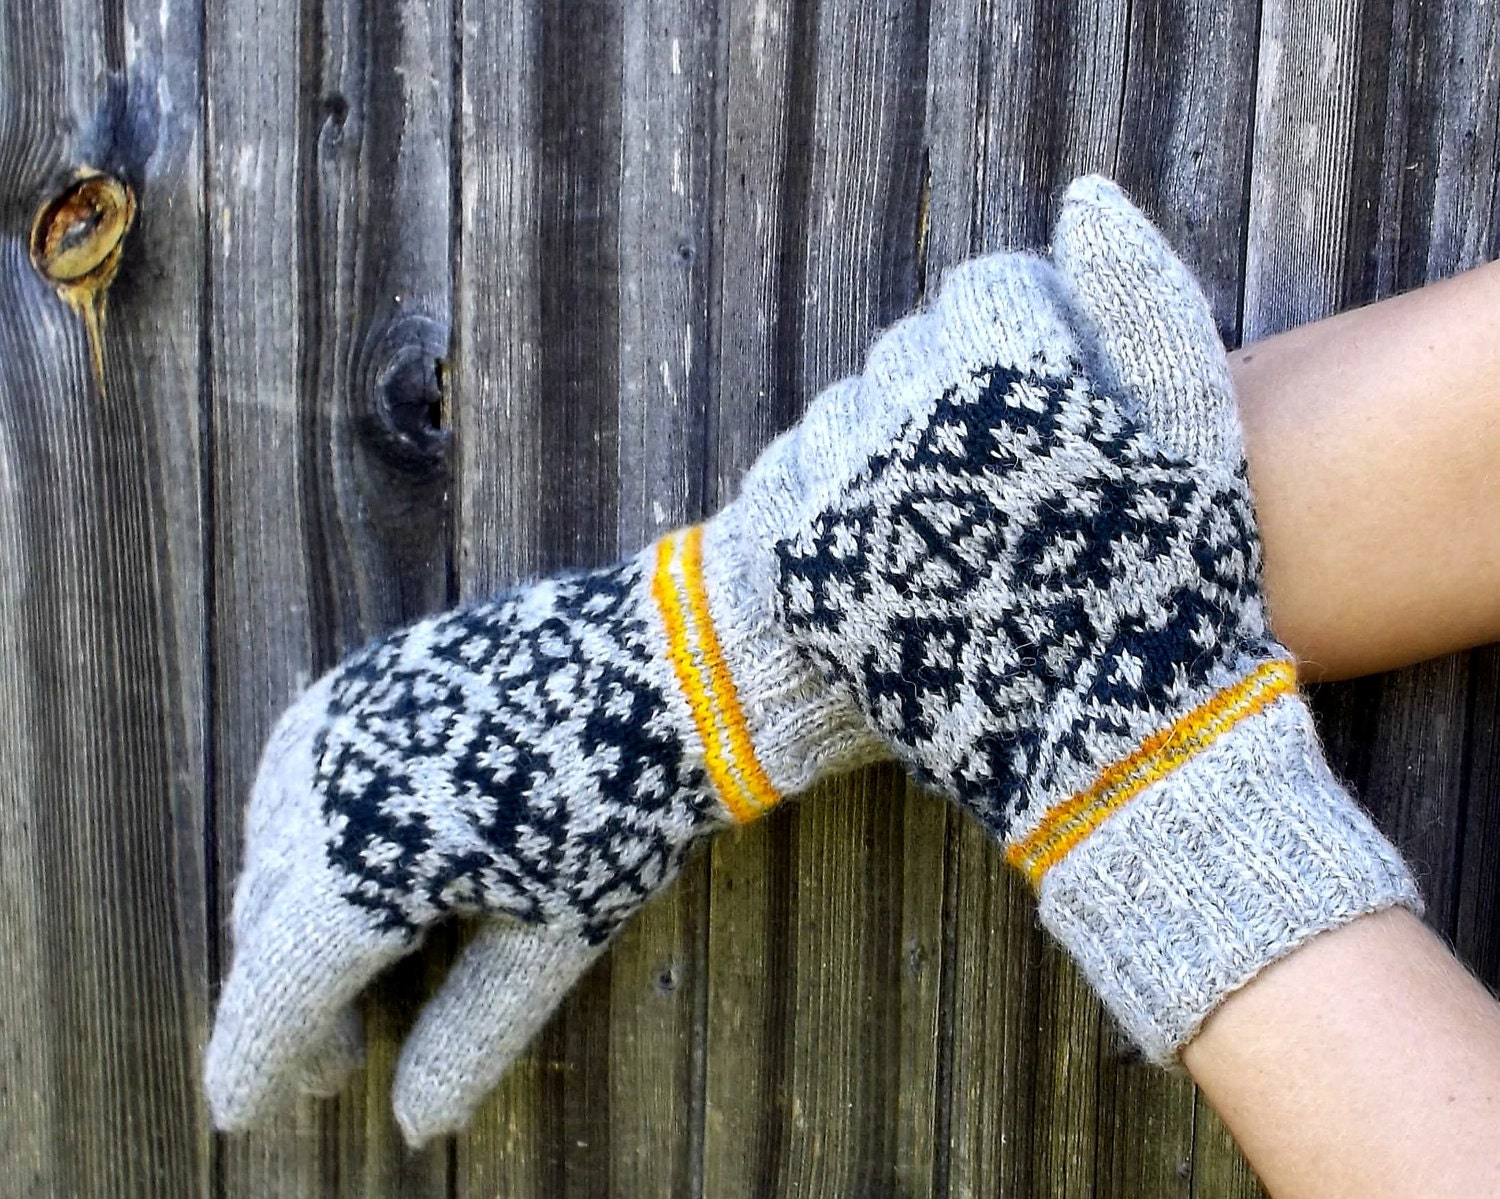 Mens gloves knitting pattern - Knit Gloves Knitted Wool Winter Gloves With Fingers Hand Knit Women Men Mittens Nordic Ethnic Arm Warmers Accessories Latvian Gloves